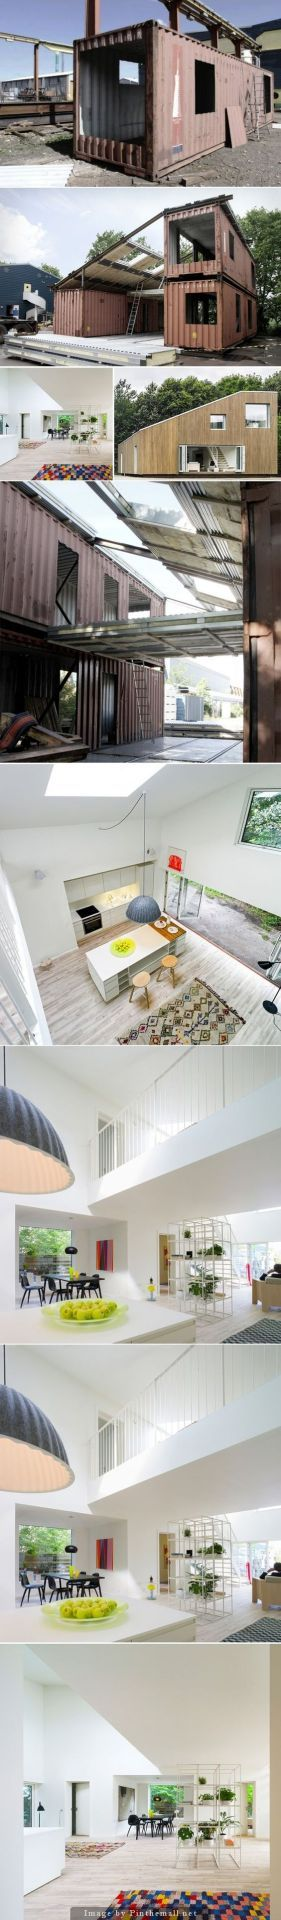 27 best ハウス images on Pinterest | Architecture, House design and ...